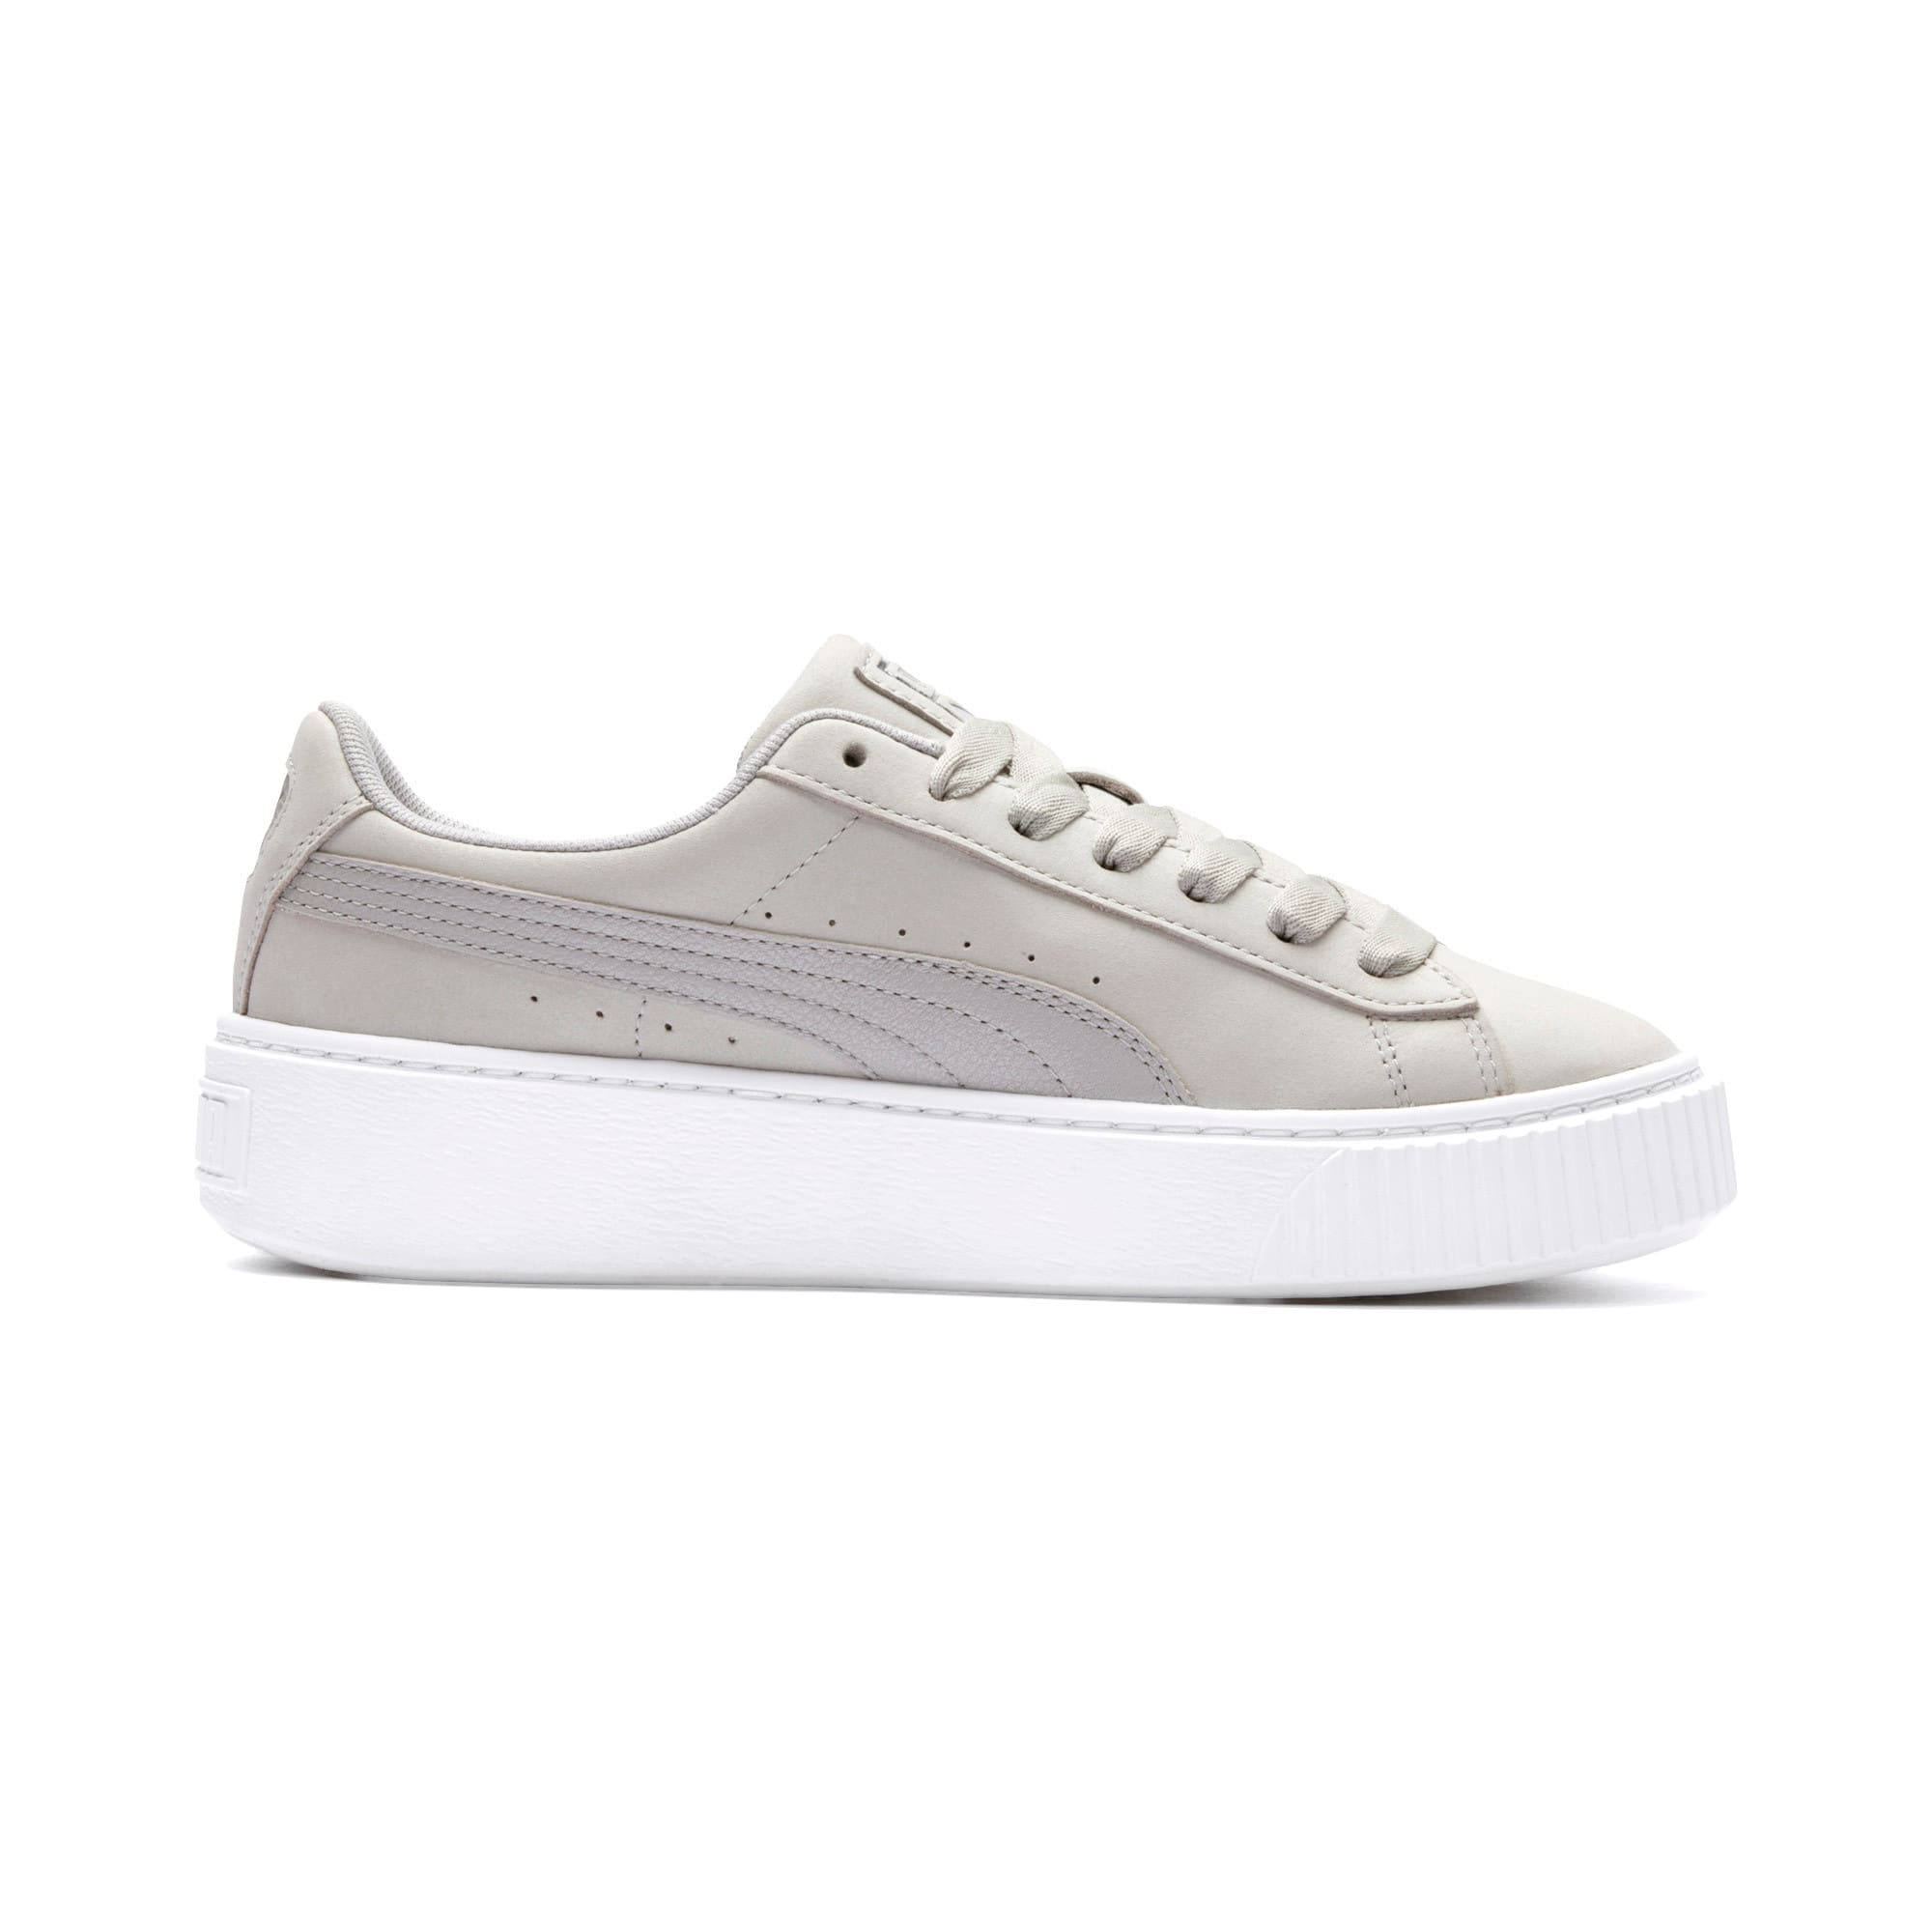 Thumbnail 6 of Suede Platform Shimmer Women's Sneakers, Gray Violet-Puma White, medium